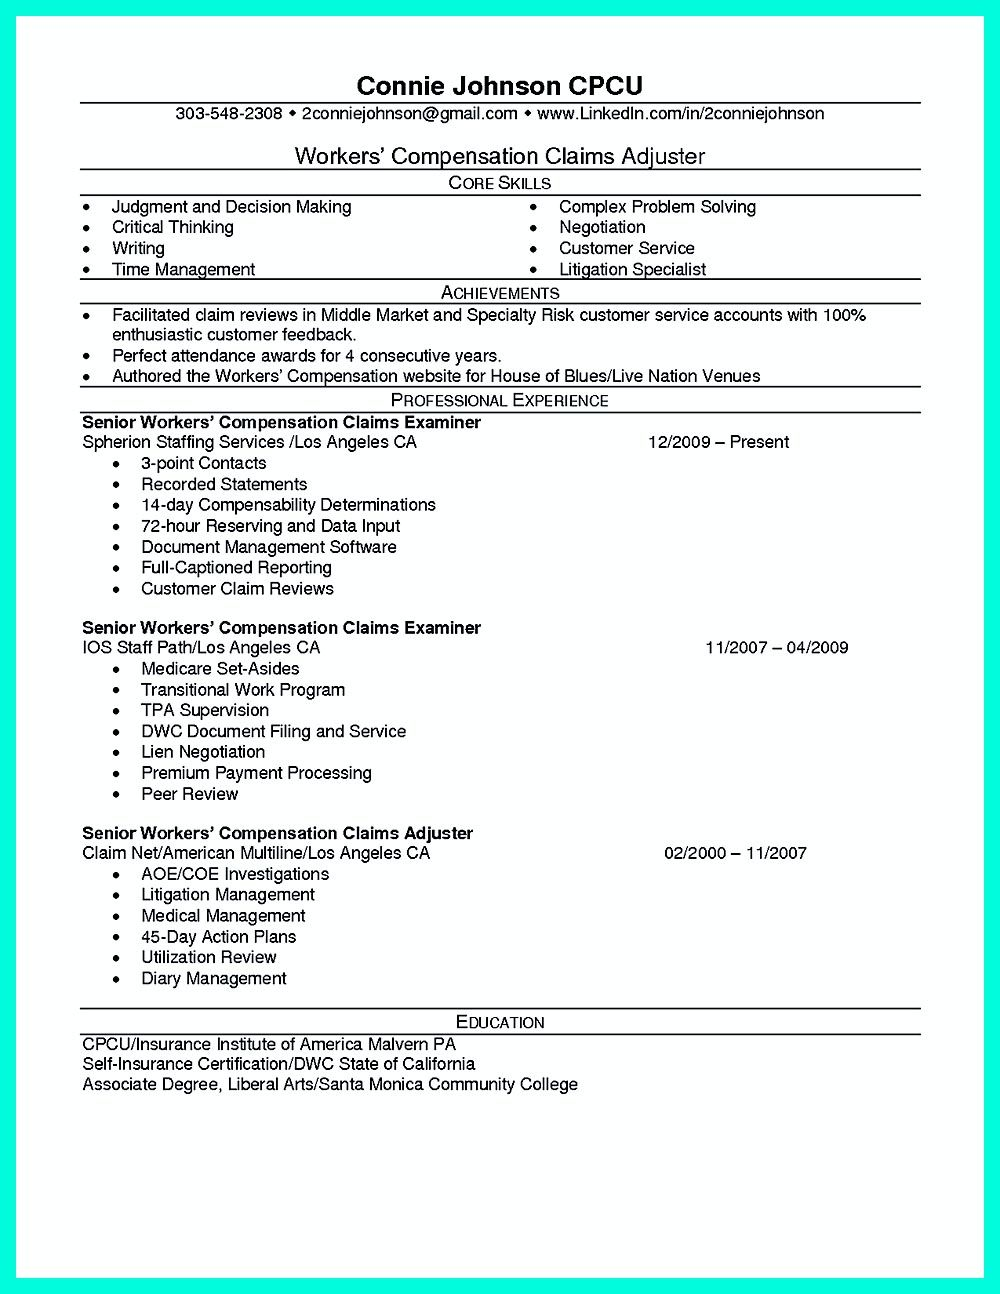 Mention Your Skills In Your Claim Adjuster Resume Job Resume Examples Resume Resume Skills